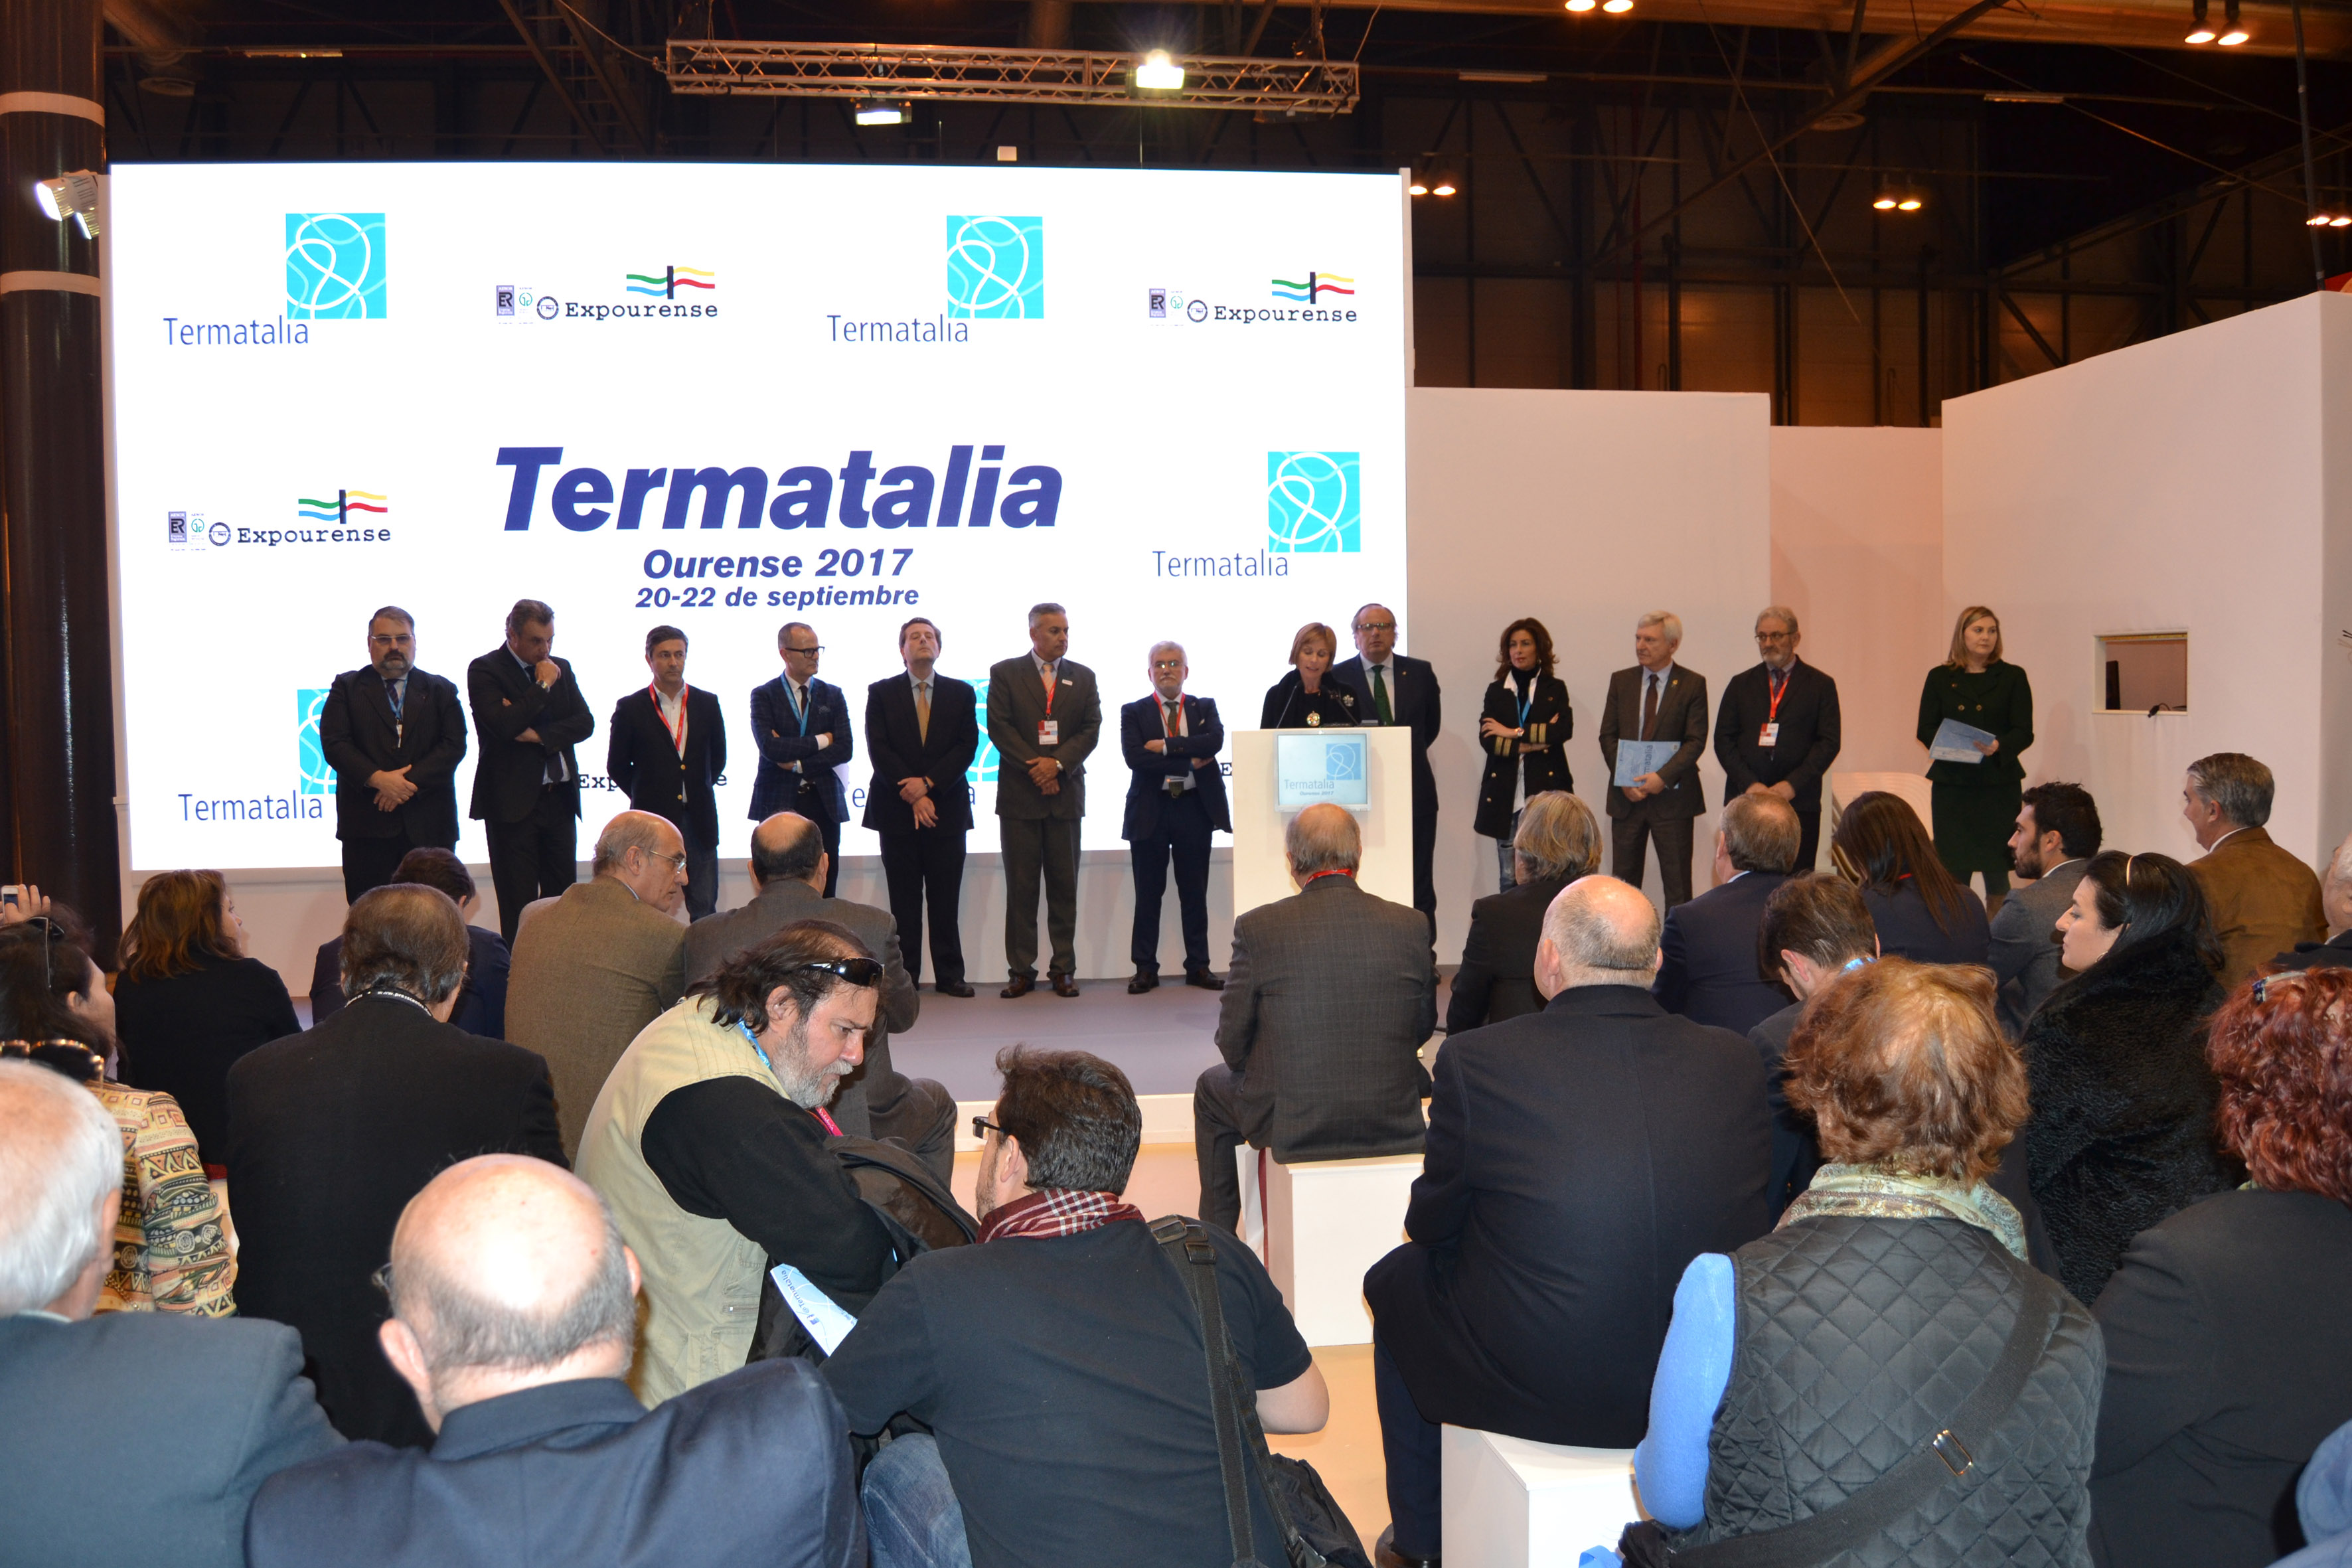 [:es]La presentación de Termatalia en Fitur supone la puesta en marcha de la promoción de la nueva edición que este esta año vuelve a OurenseA presentación de Termatalia en Fitur supón a posta en marcha da promoción da nova edición que este esta ano volve a OurenseThe presentation of Termatalia Fitur supposes the launch of the promotion of the new edition that this year returns to Ourense  The International Fair of Thermal Tourism, Health and Welfare returns to Europe and will be held in Ourense (Galicia-Spain) on 20 and 21 September 2017   The presentation of Termatalia FITUR has meant the start of the international promotion of Termatalia 2017 that in this new edition returns to Ourense become the forum and point of convergence of the agents who work in the development of the world-wide thermalism. The good results of the business actions of the 2016 edition of Mexico have contributed to reinforce the main asset of the fair, which is the relational capital generated and in which are integrated the main sectoral associations of countries in Europe and America Latina who collaborate and actively participate in it.  In the presentation the organizers of the fair were clothed by representatives of the public and private organizations that have contributed to position it as a global brand of thermalism, among which were not lacking the director of Tourism of Galicia, Nava Castro, nor the deputy director Of Turespaña, Rafael Chamorro, who emphasized the work of international diffusion that realizes this fair.  Also intervened in this the president of Spas of Spain and ICTE, Miguel Mirones; The Deputy Minister of Tourism of Venezuela, Ali Padrón; The president of Tourism Porto and North, Melchior Moreira; The president of the Spanish Confederation of Travel Agencies (CEAV), Rafael Gallego; The president of the Cluster of Tourism of Galicia, Francisco González; The mayor of Ourense, Jesús Vázquez and the vice president of the Provincial Council of Ourense, Rosendo Fernánd